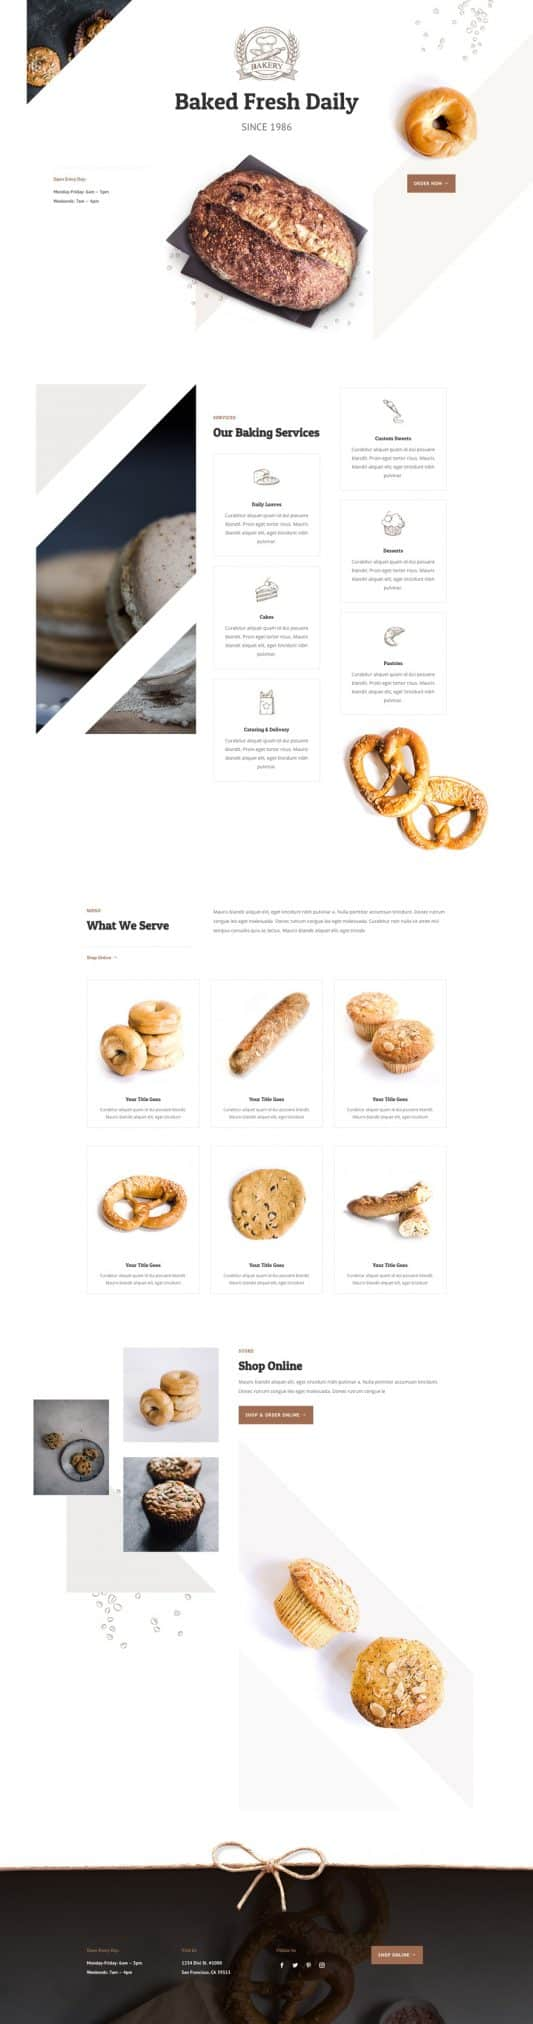 Bakery Web Design 2